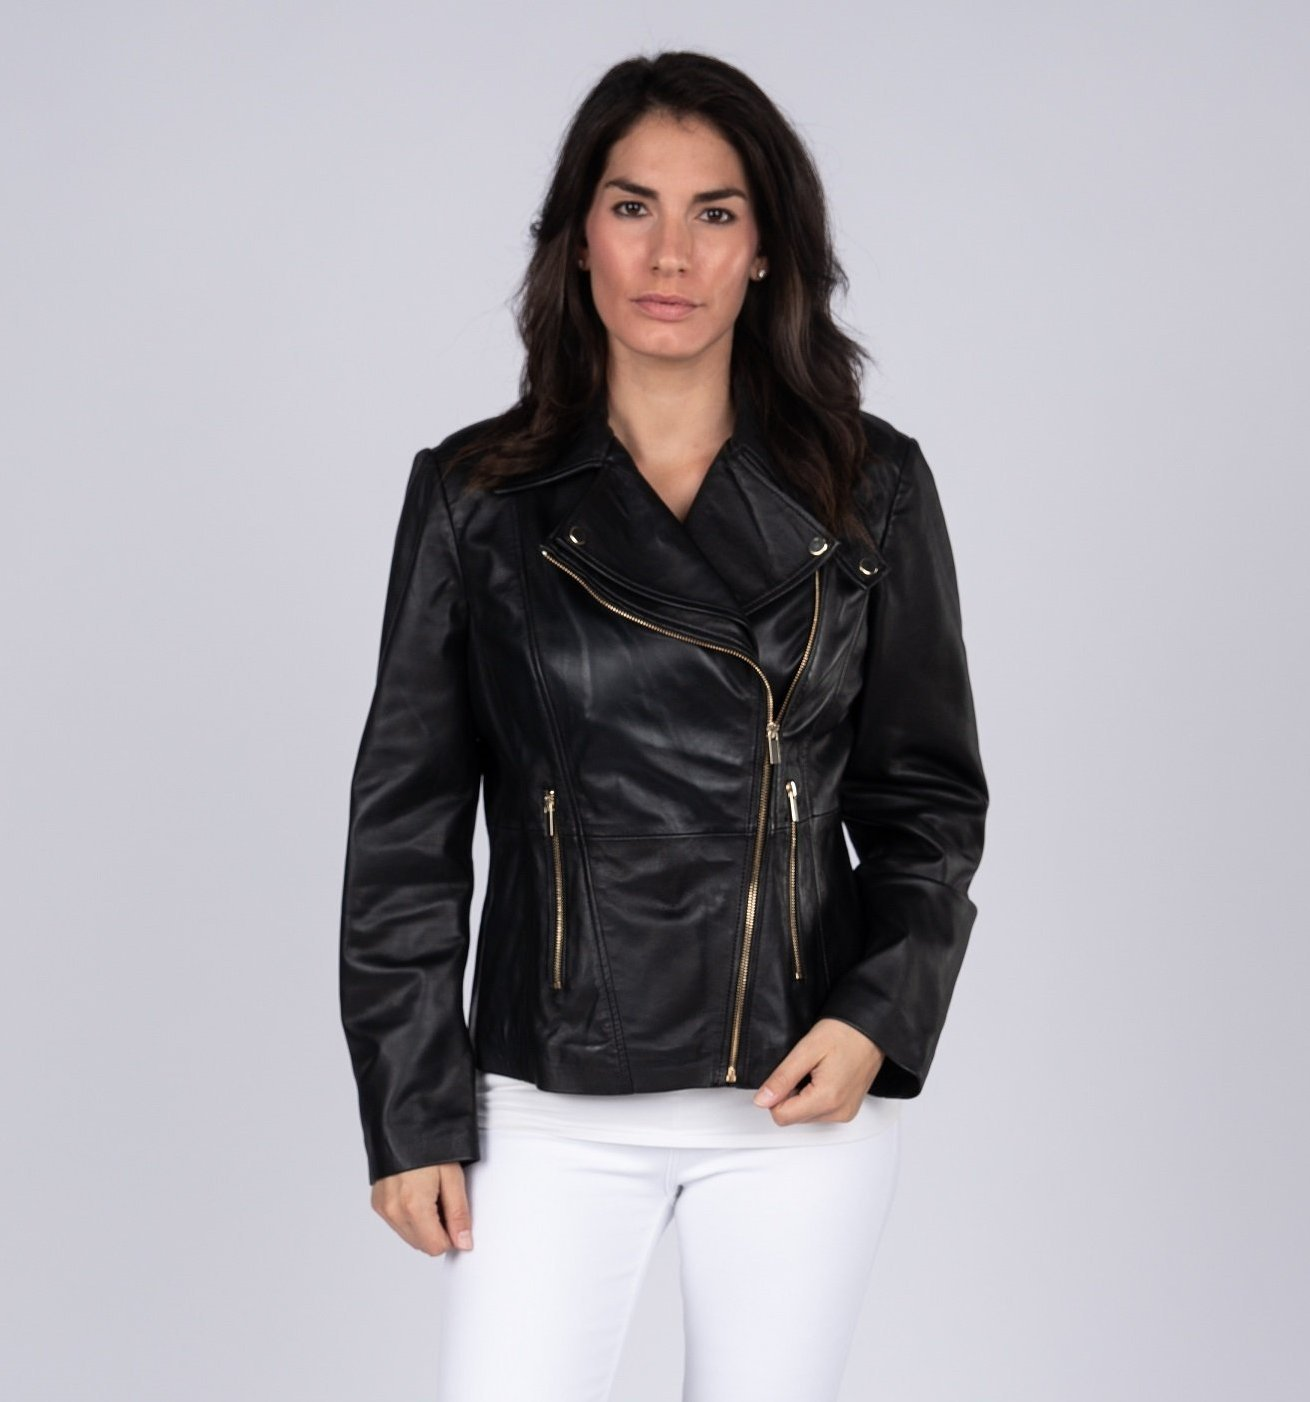 d5a96ad4c Charlotte Womens Leather Jacket - Discounted! Womens Leather Jacket ...